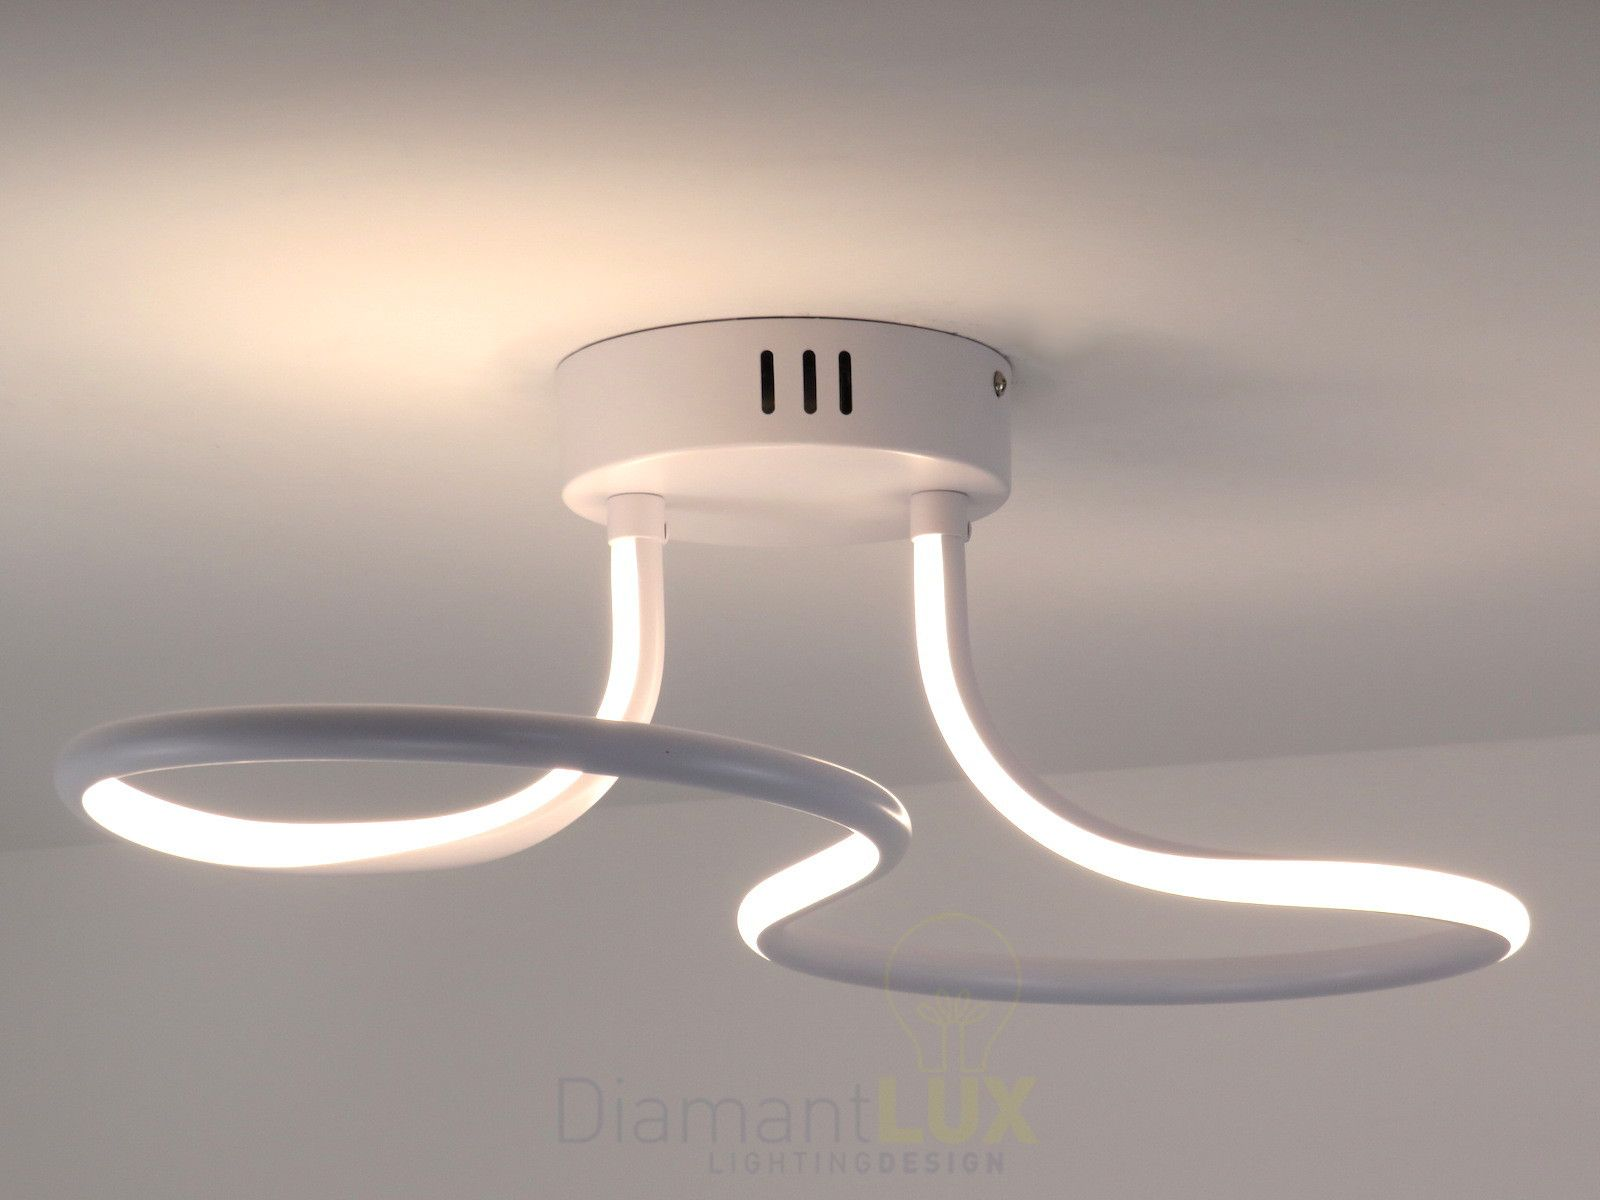 Plafoniere Led A Soffitto Moderno Dimmerabile : Plafoniera da soffitto dal design moderno realizzato in metallo